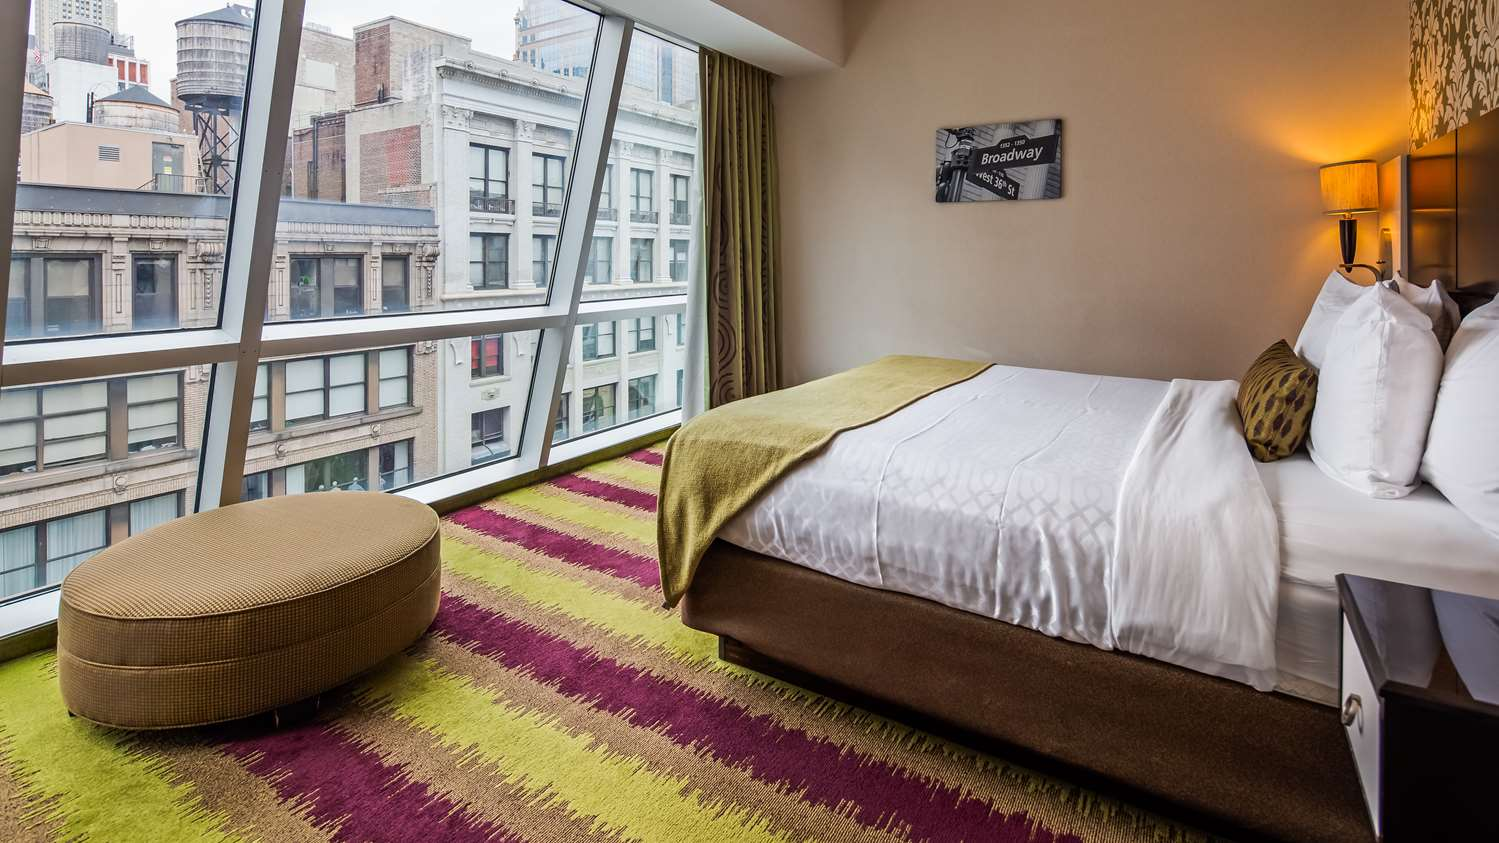 Best Western Premier Herald Square | Hotels in New York, New